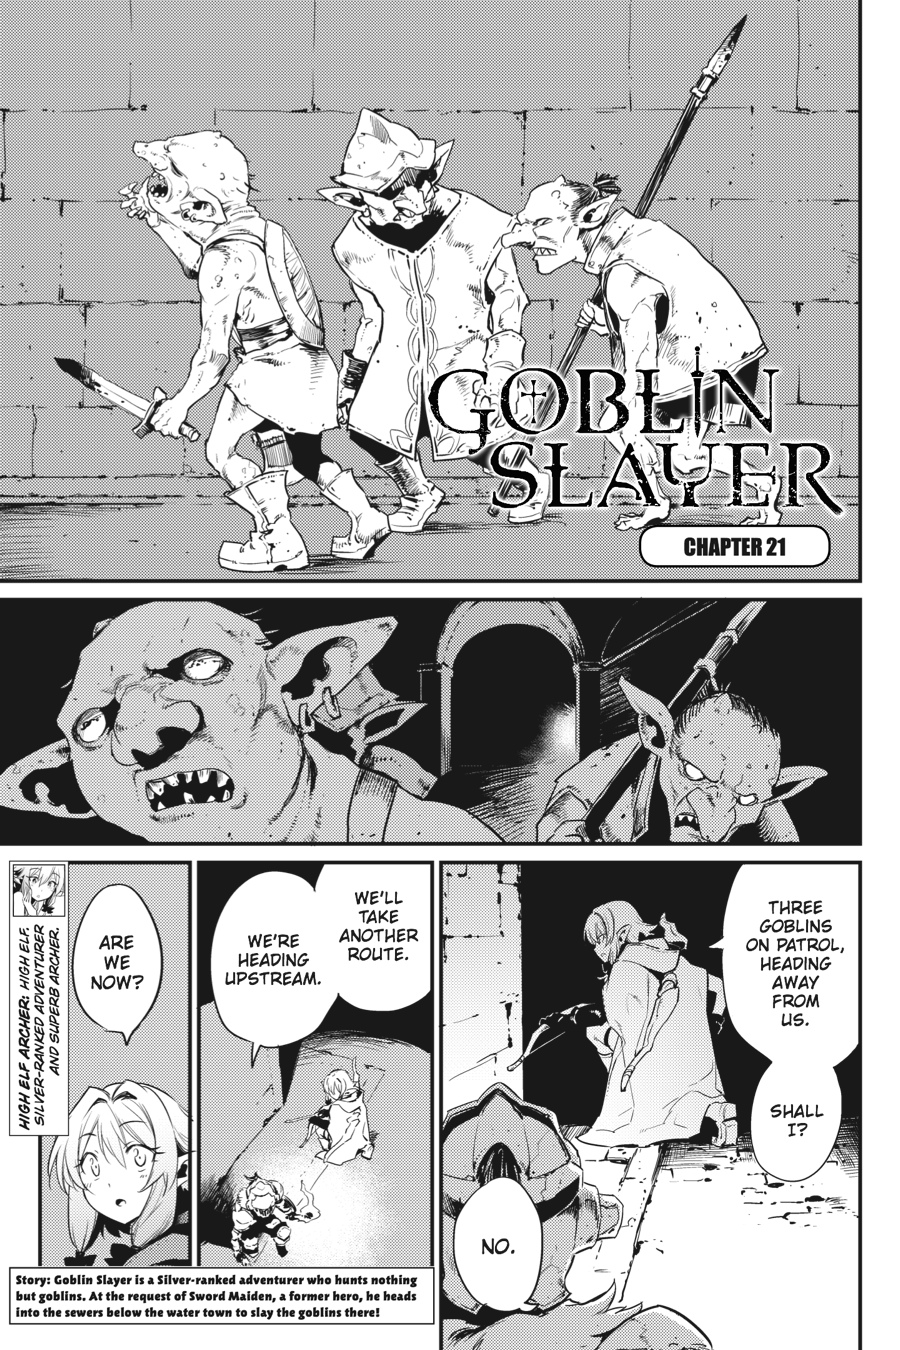 goblin slayer wiki elves,rhea goblin slayer,goblin slayer spearman,goblin slayer episode 1 wiki,goblin slayer rating,goblin slayer season 1,goblin slayer ep 1,goblin slayer crunchyroll,goblin slayer episode 1,vol 2 light novel,goblin slayer review,goblin slayer: goblin crown full movie,goblin slayer meme,goblin slayer chosen heroine,goblin slayer imdb,goblin slayer season 2,goblin slayer anime season 2,movie goblin slayer goblin's crown,goblin slayer recommendation,watch goblin slayer 1,goblin slayer episodes,